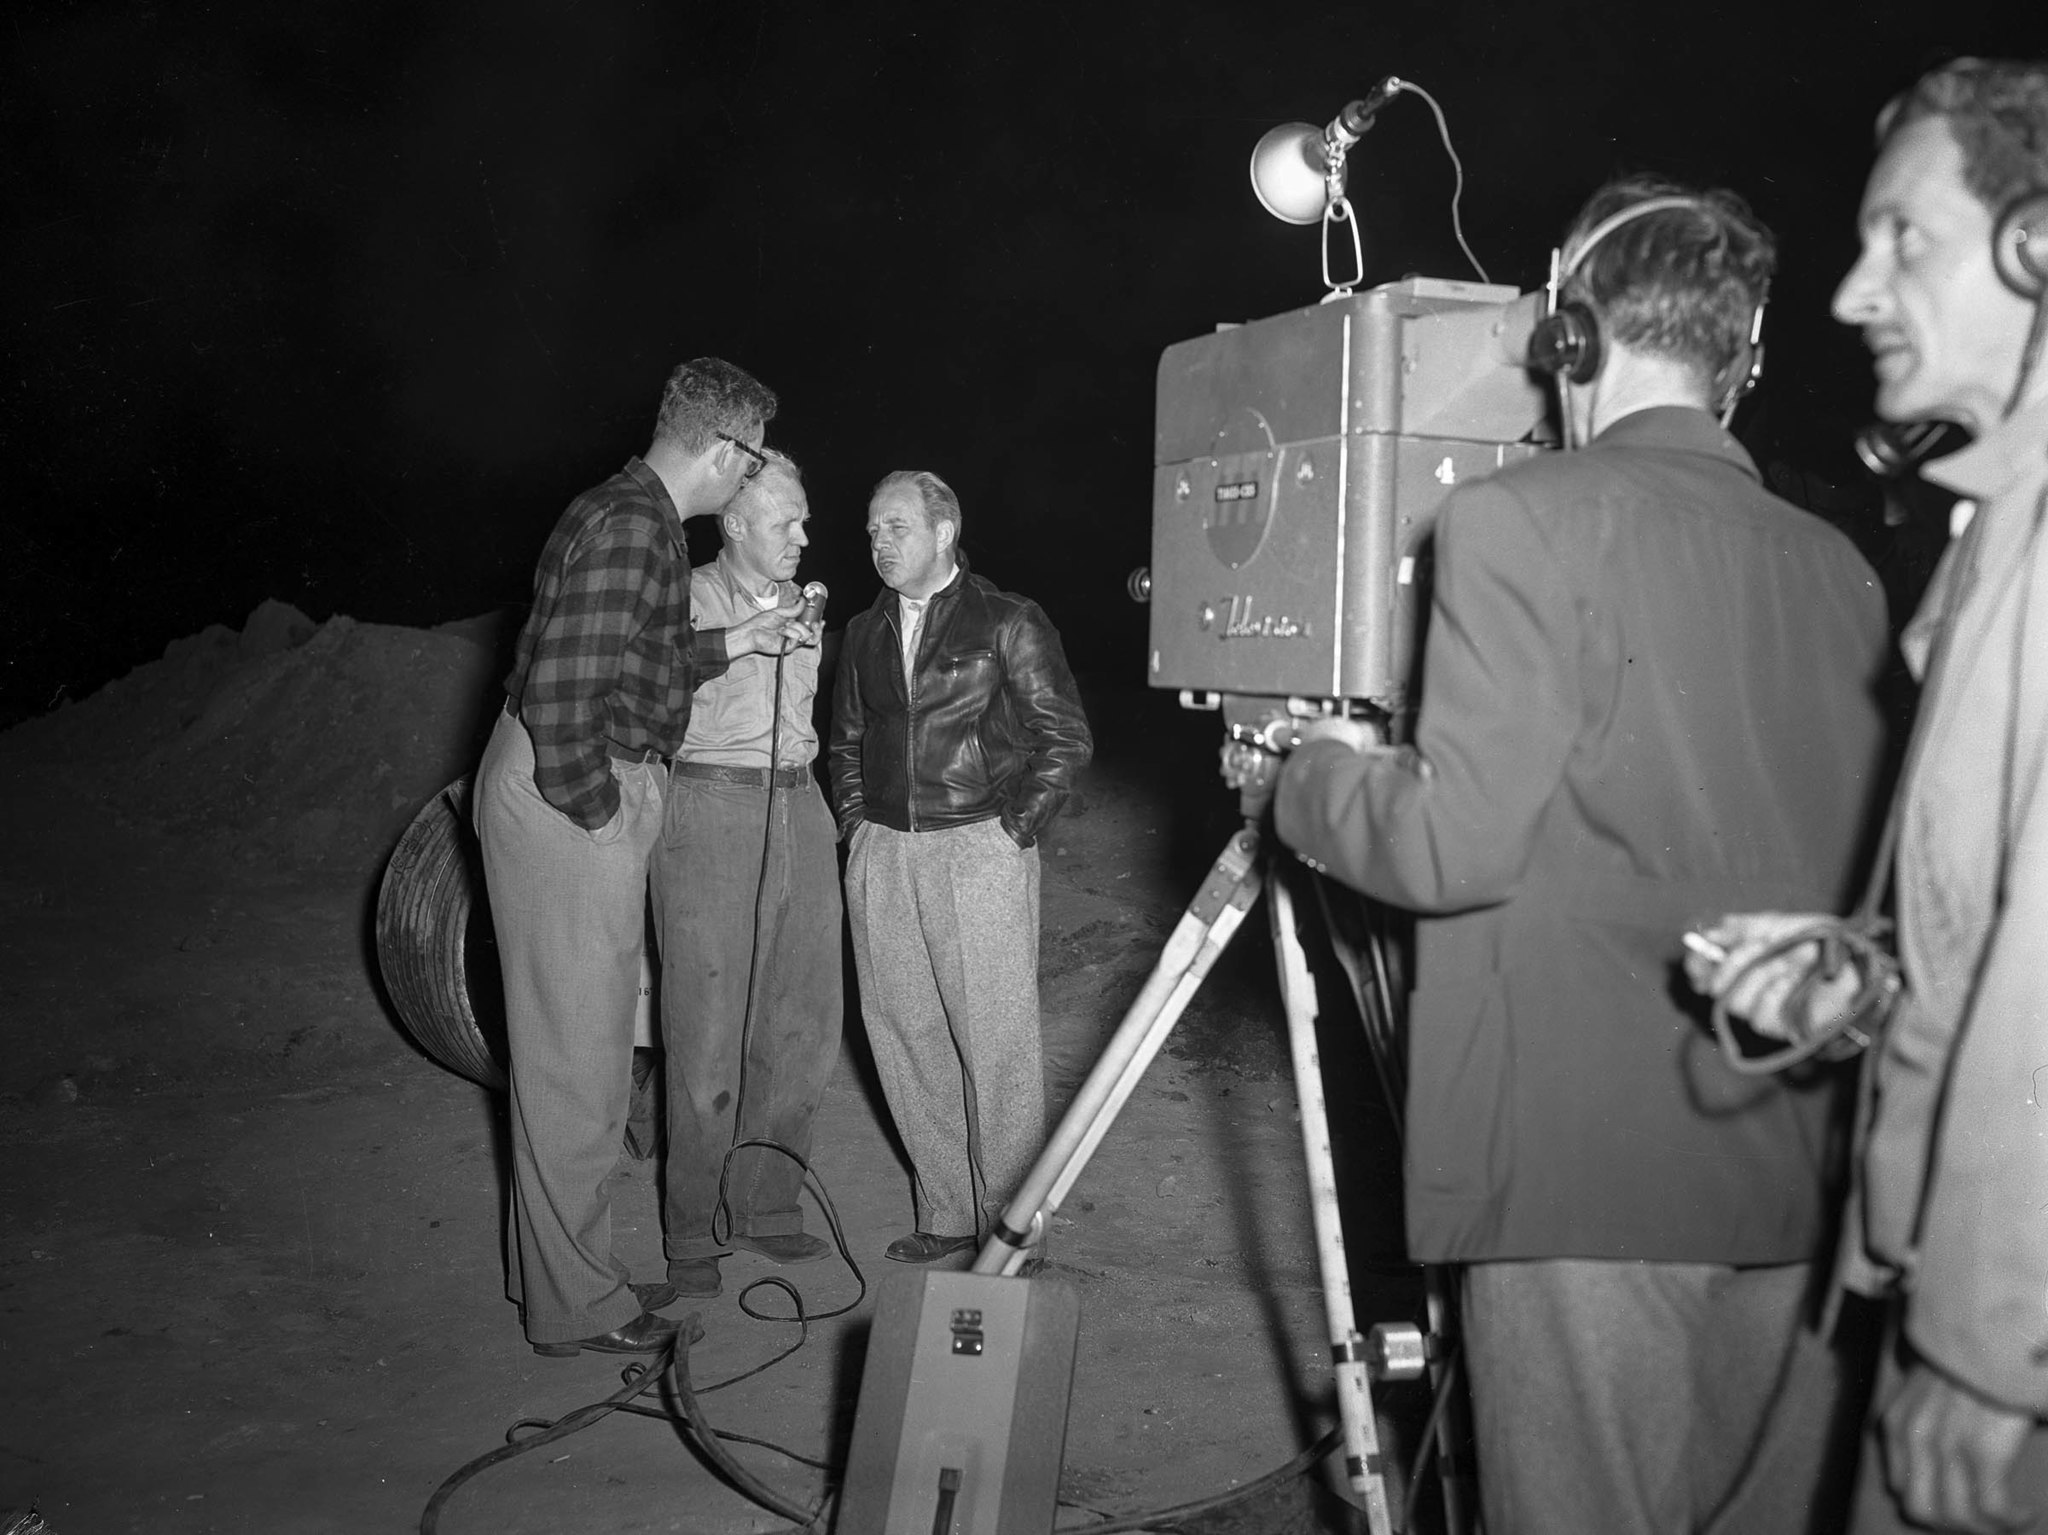 April 9, 1949: KTTV - 11 television coverage of Kathy Fiscus rescue attempt in San Marino. No other